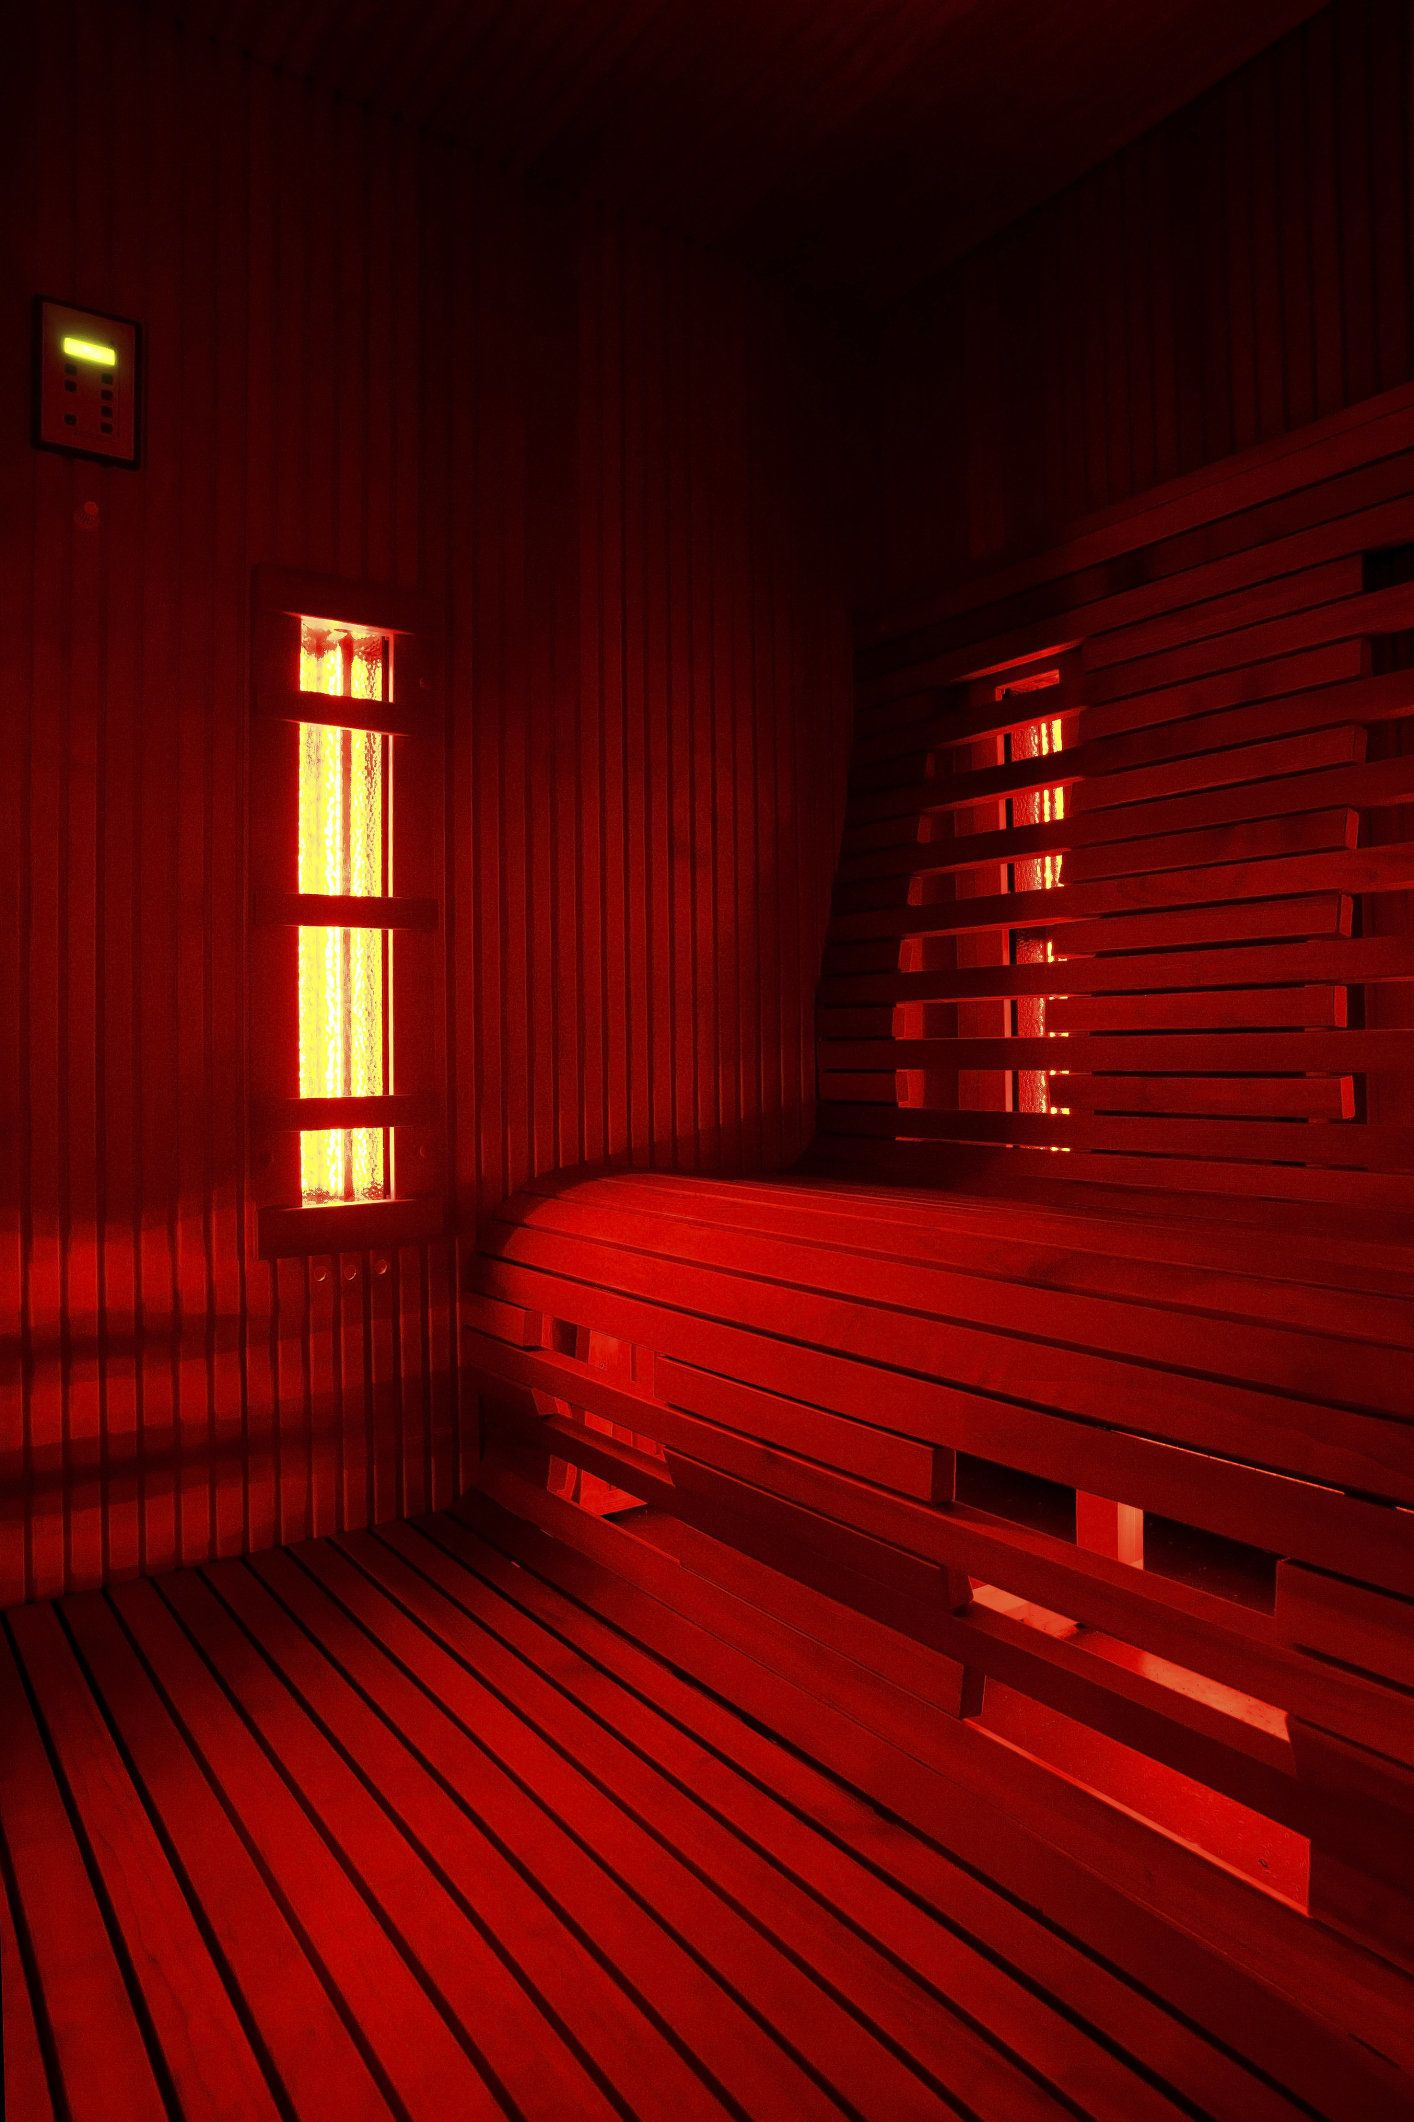 Sauna For Sale >> I Tried To Sit In An Infrared Sauna For An Hour, And Here's What Happened | HuffPost